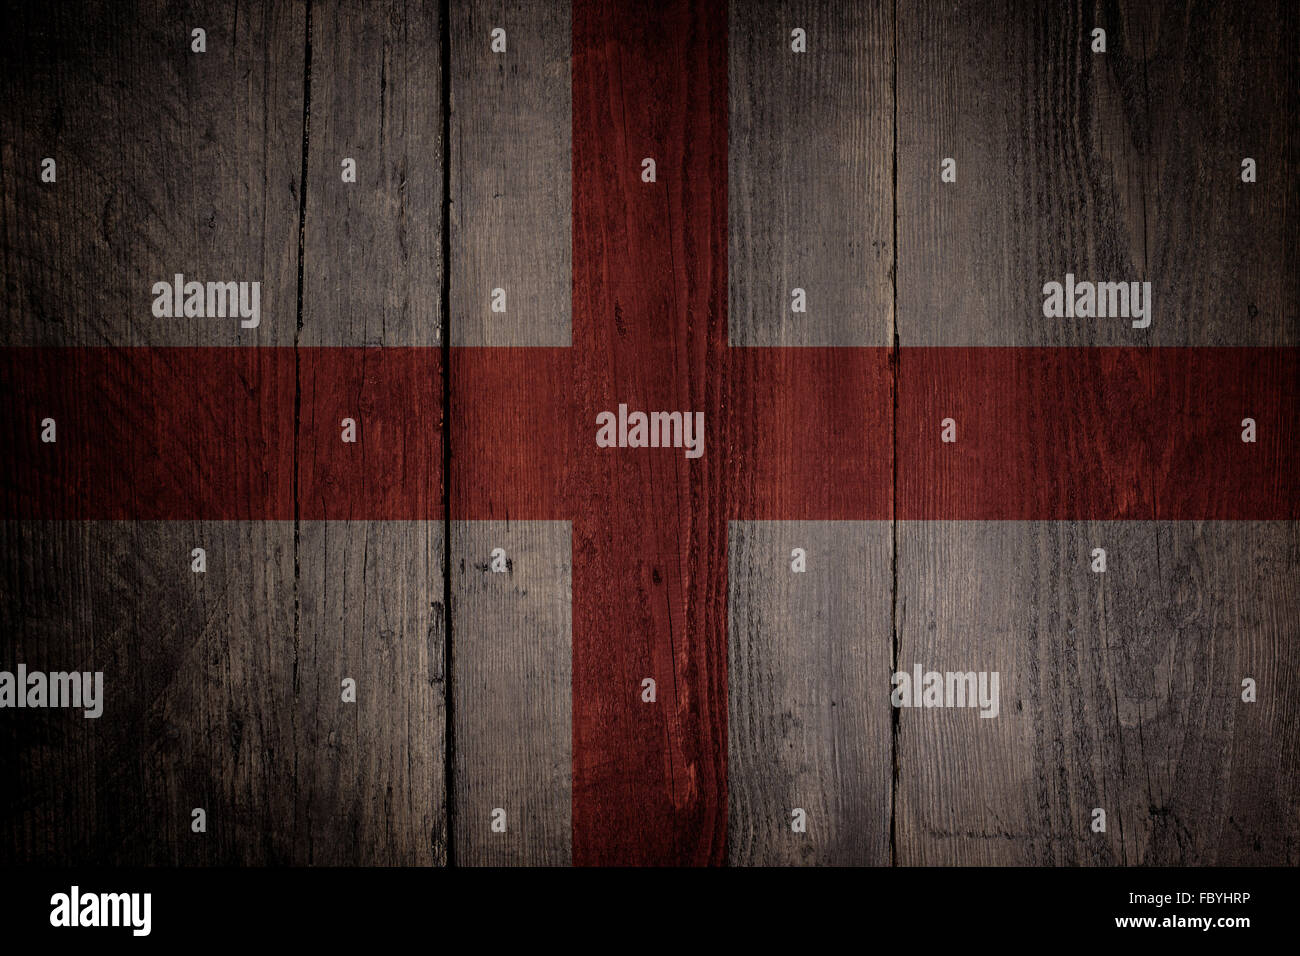 English flag. Stock Photo